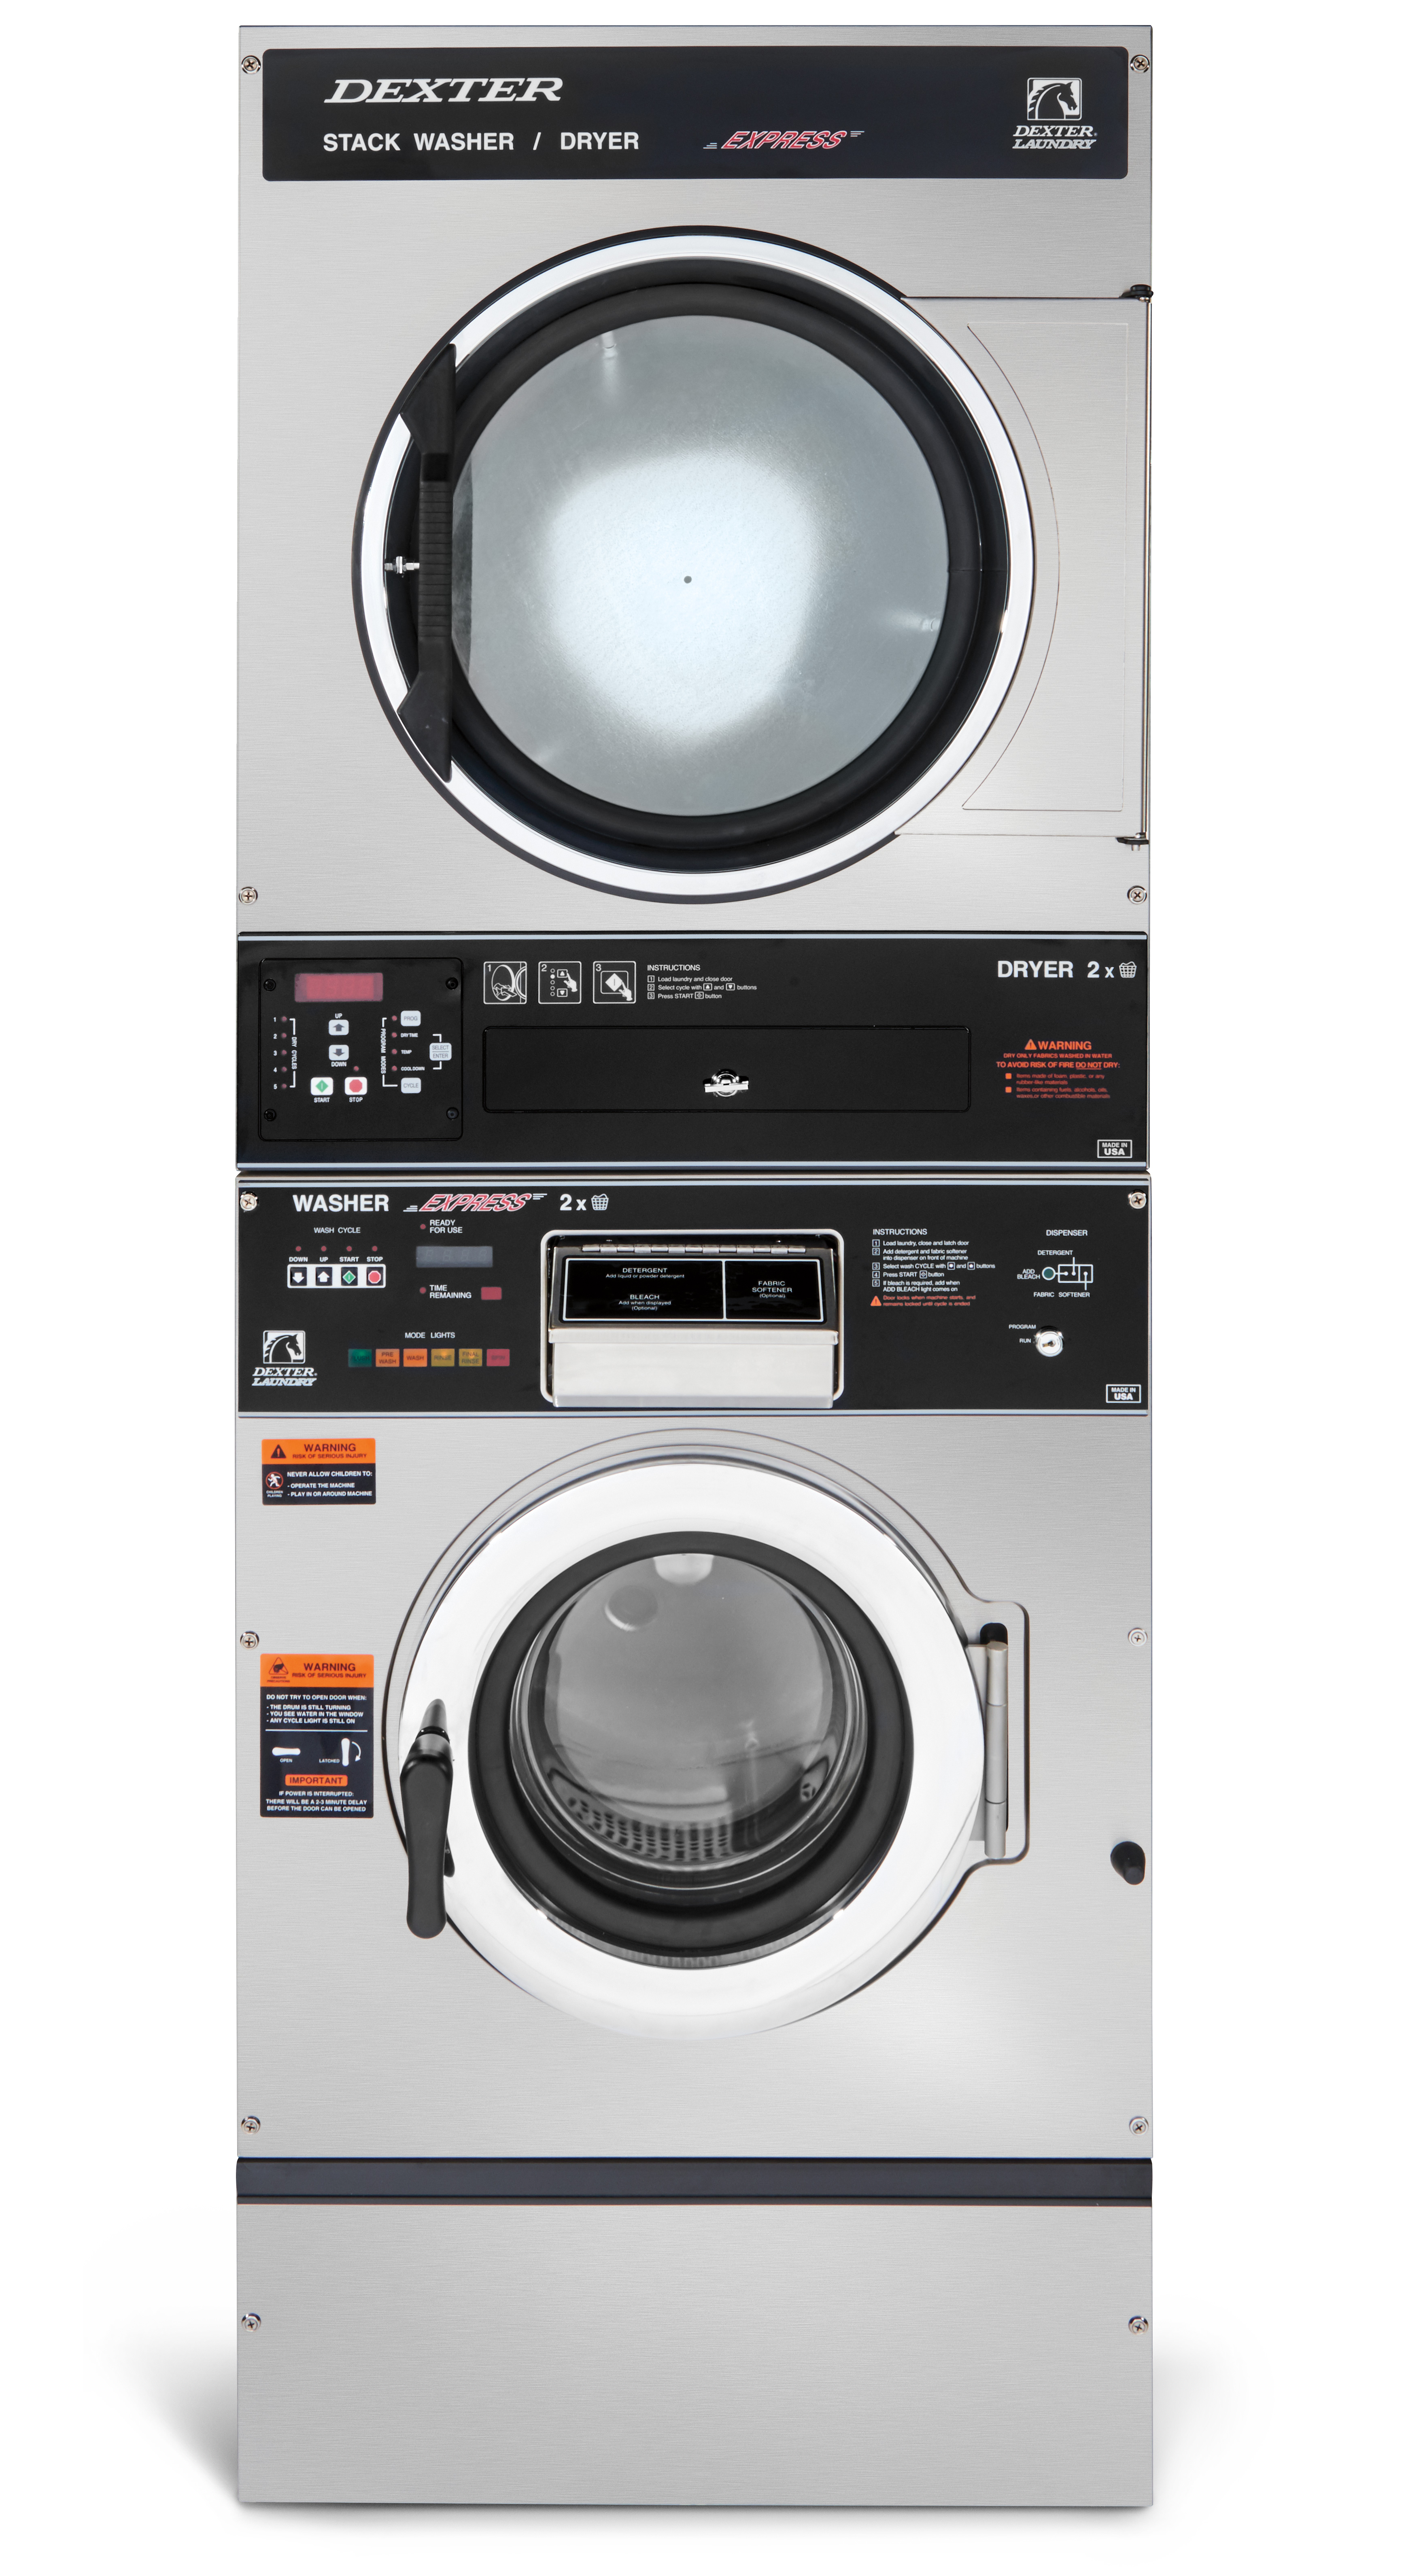 Dexter T-350 Stack Washer Dryer 6 Cycle Product Image